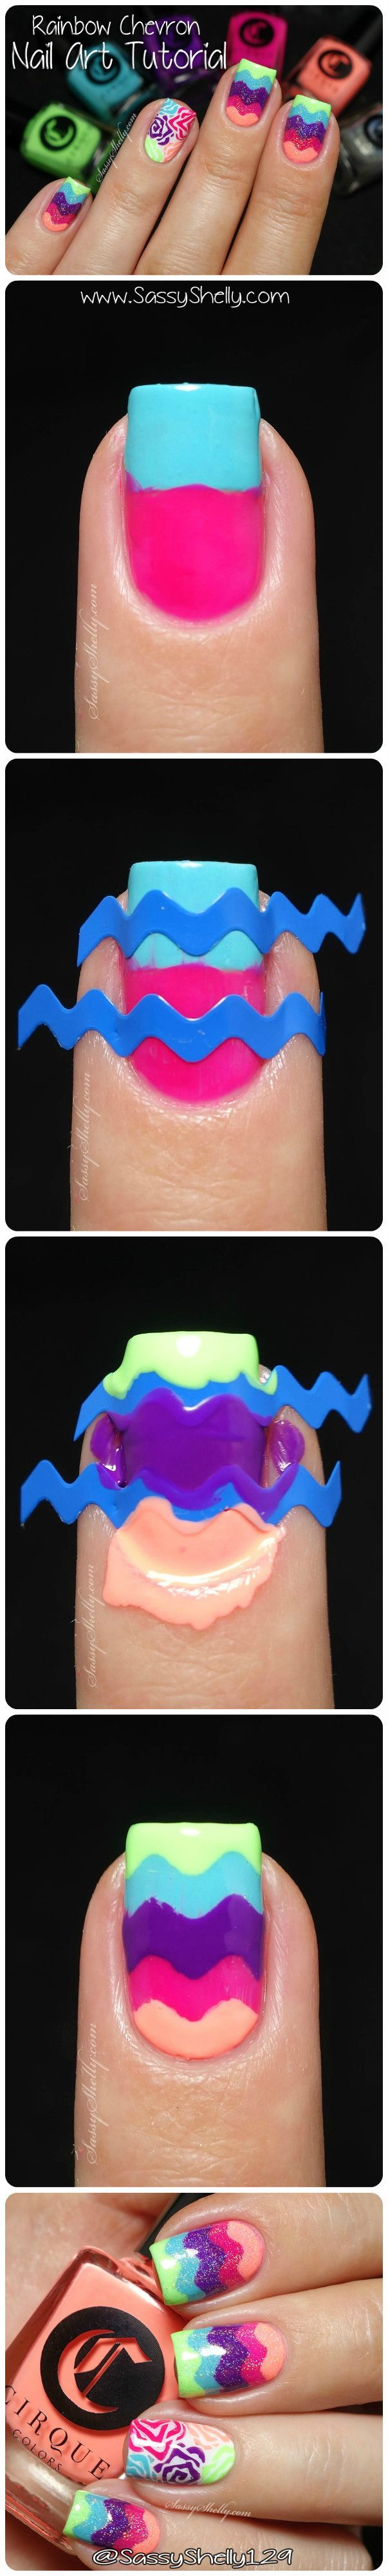 Easy step-by-step Nail Art Tutorial - How to create a Chevron nail vinyl design with more than 2 colors! Featuring the Cirque Vice neon collection and reverse stamping accent with Bundle Monster. | Sassy Shelly.